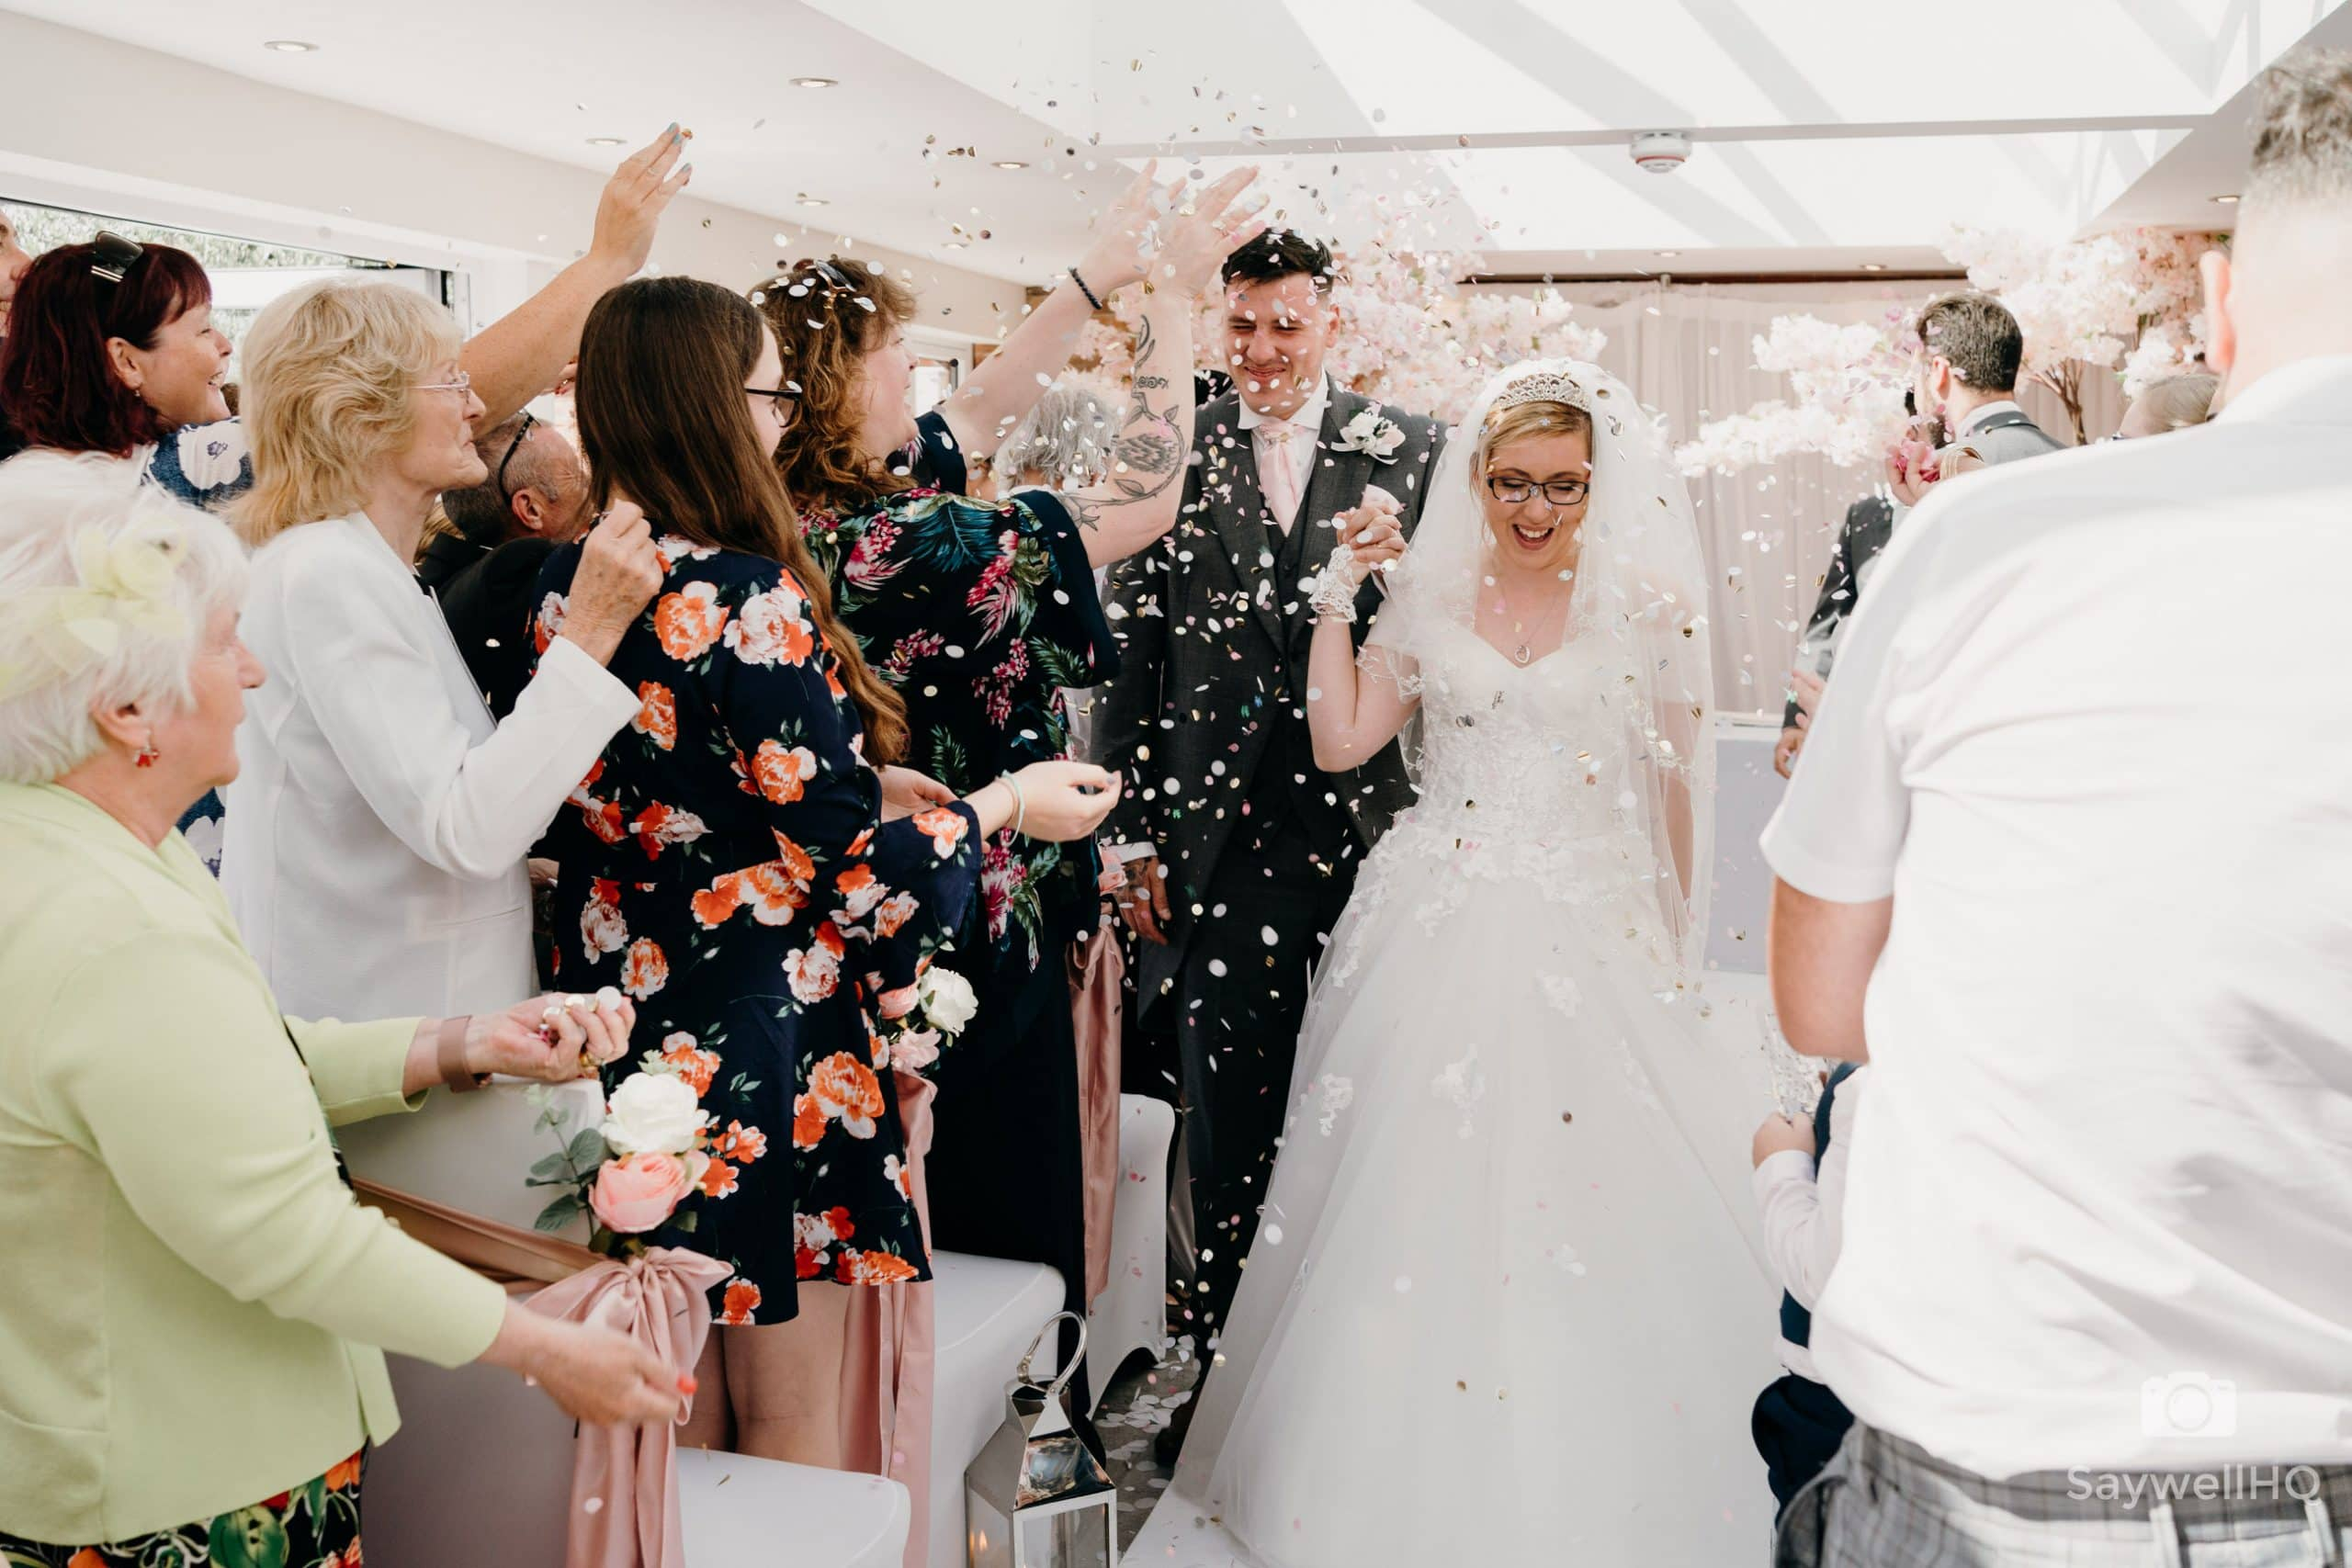 THE WHITE HART AT MOORWOOD MOOR Wedding Photography Documentary Wedding Photographer - bride and groom walking through the confetti!